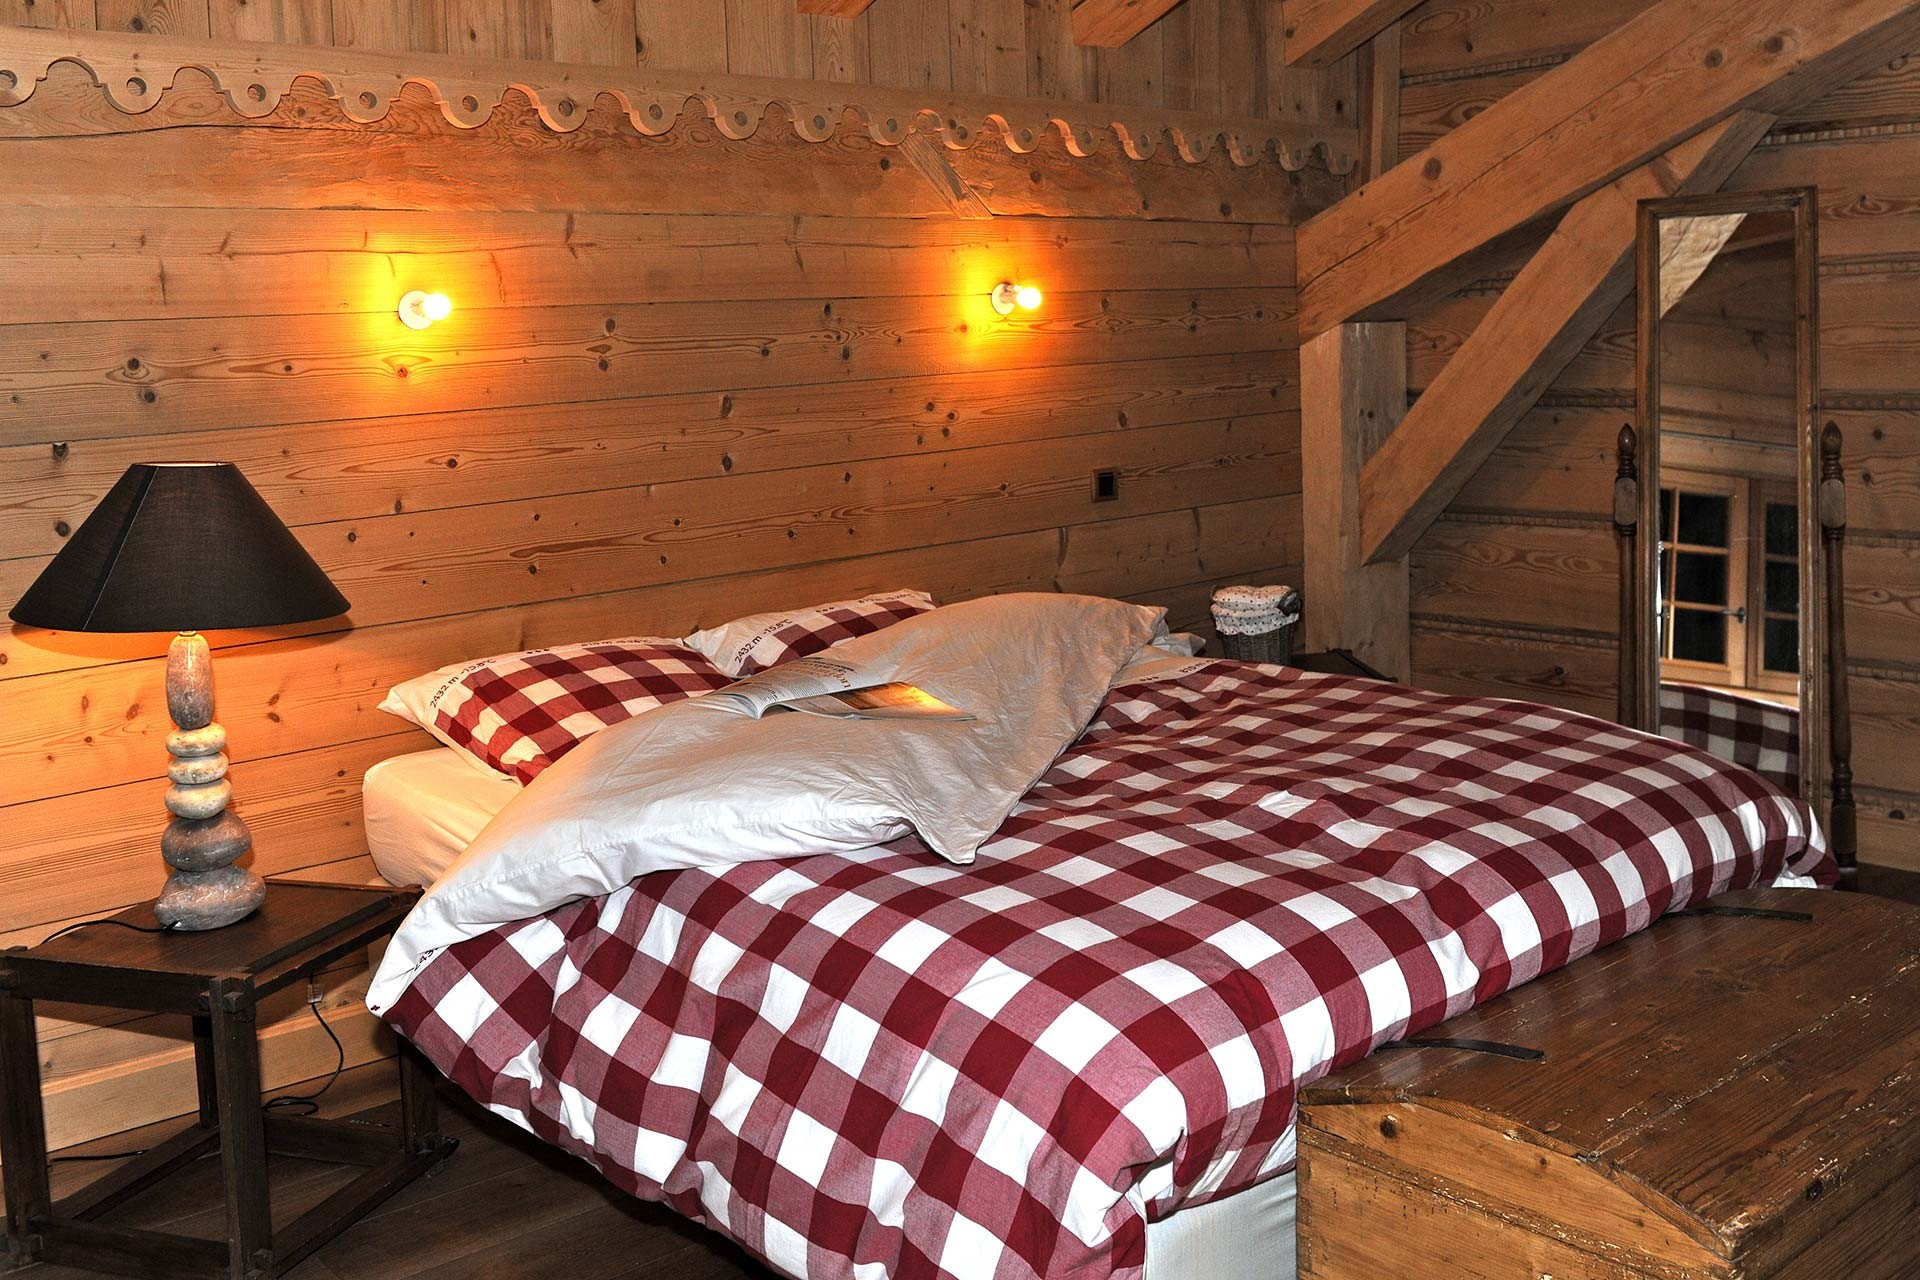 Accommodations with adapted rooms